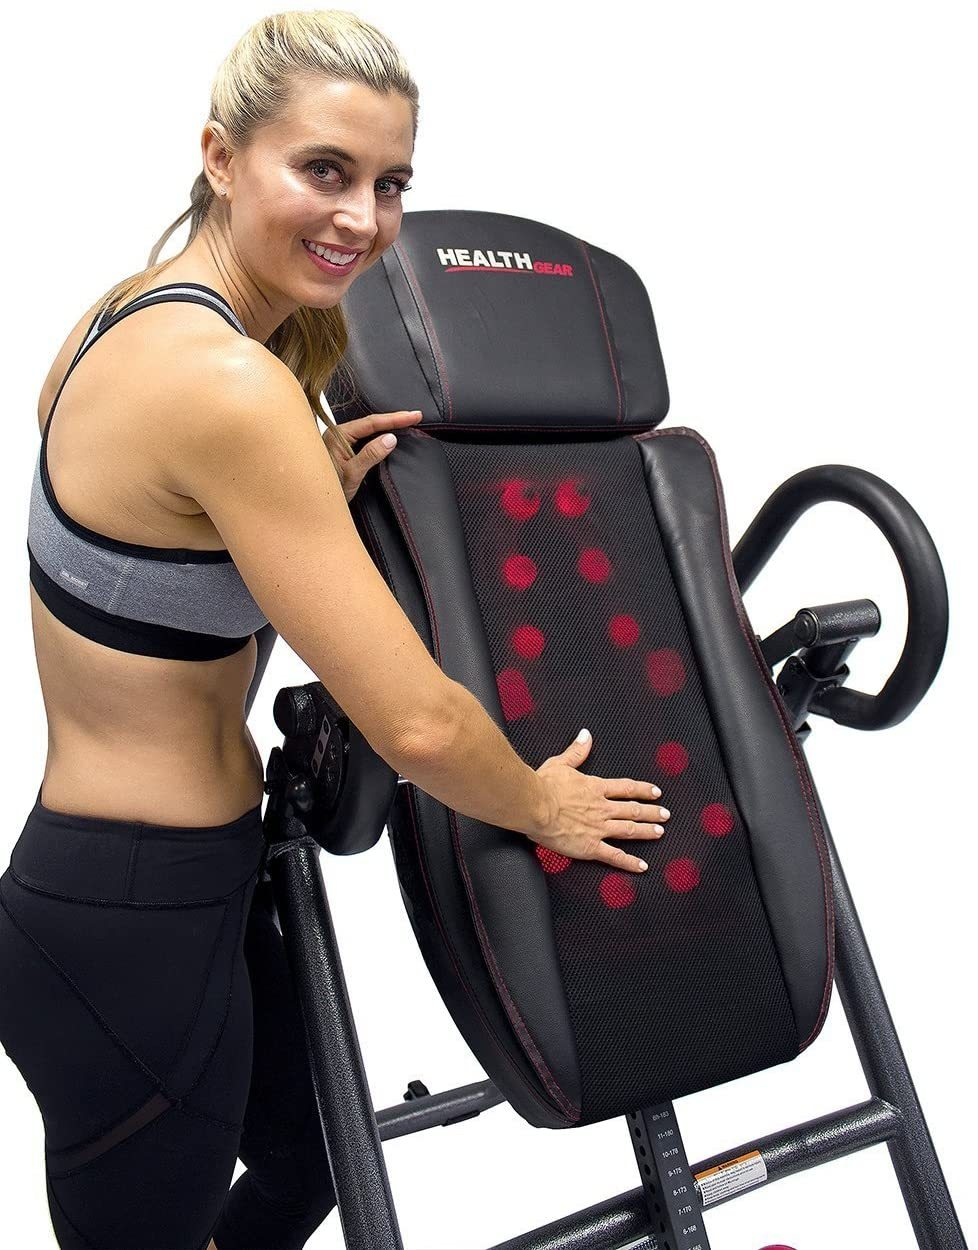 ITM7.0-S Patented Deep Tissue Shiatsu Heat & Massage Inversion Table - Heavy Duty up to 300 lbs.